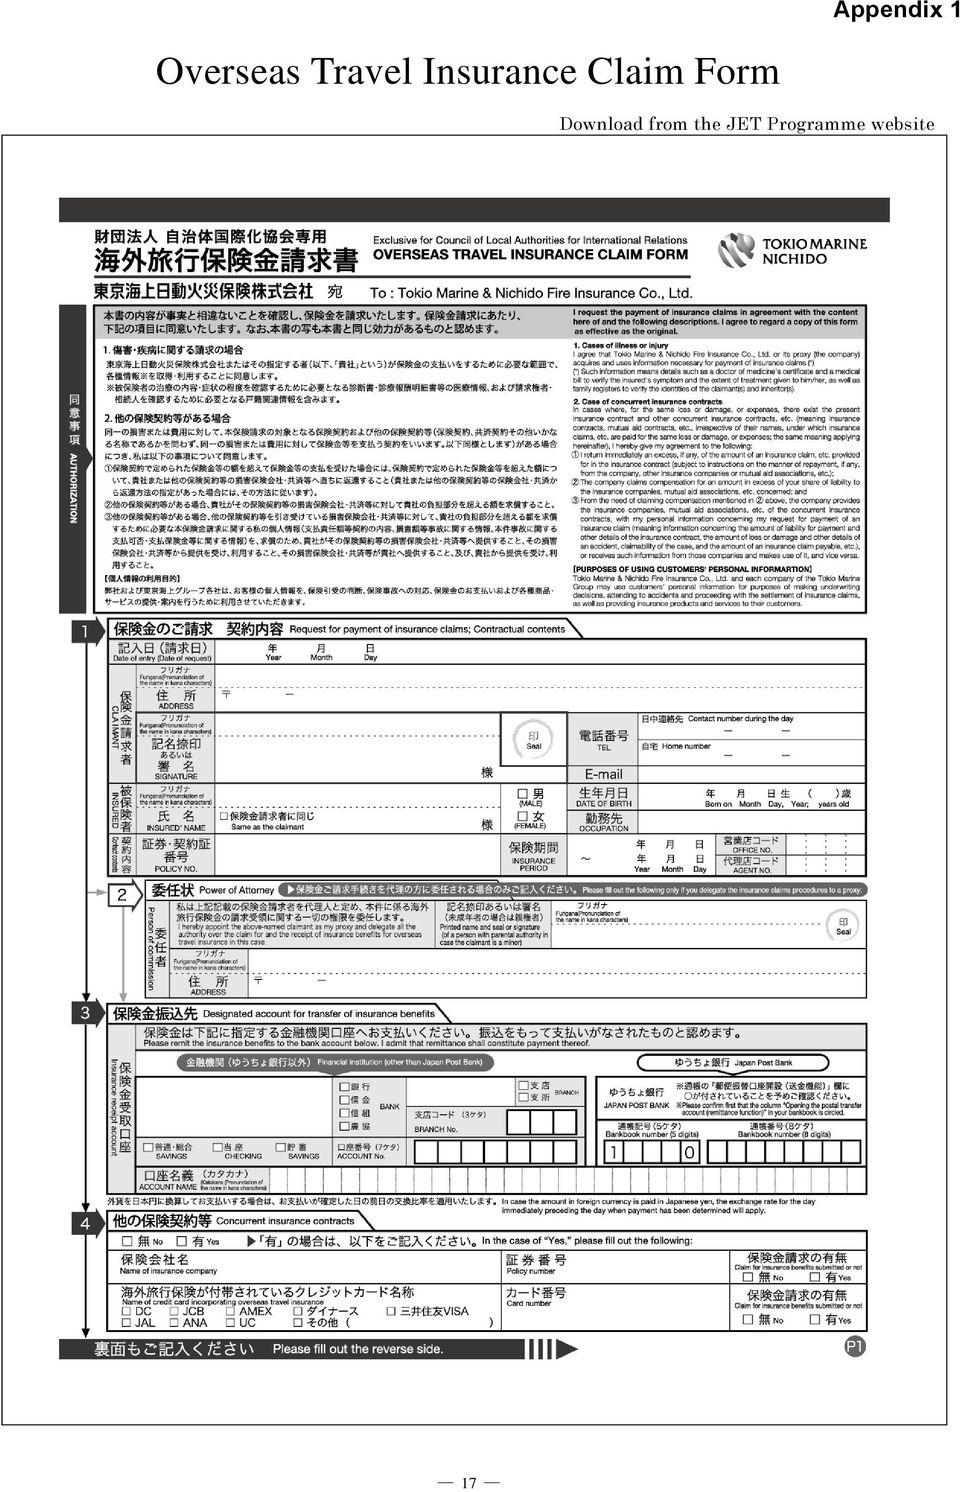 Form Download from the